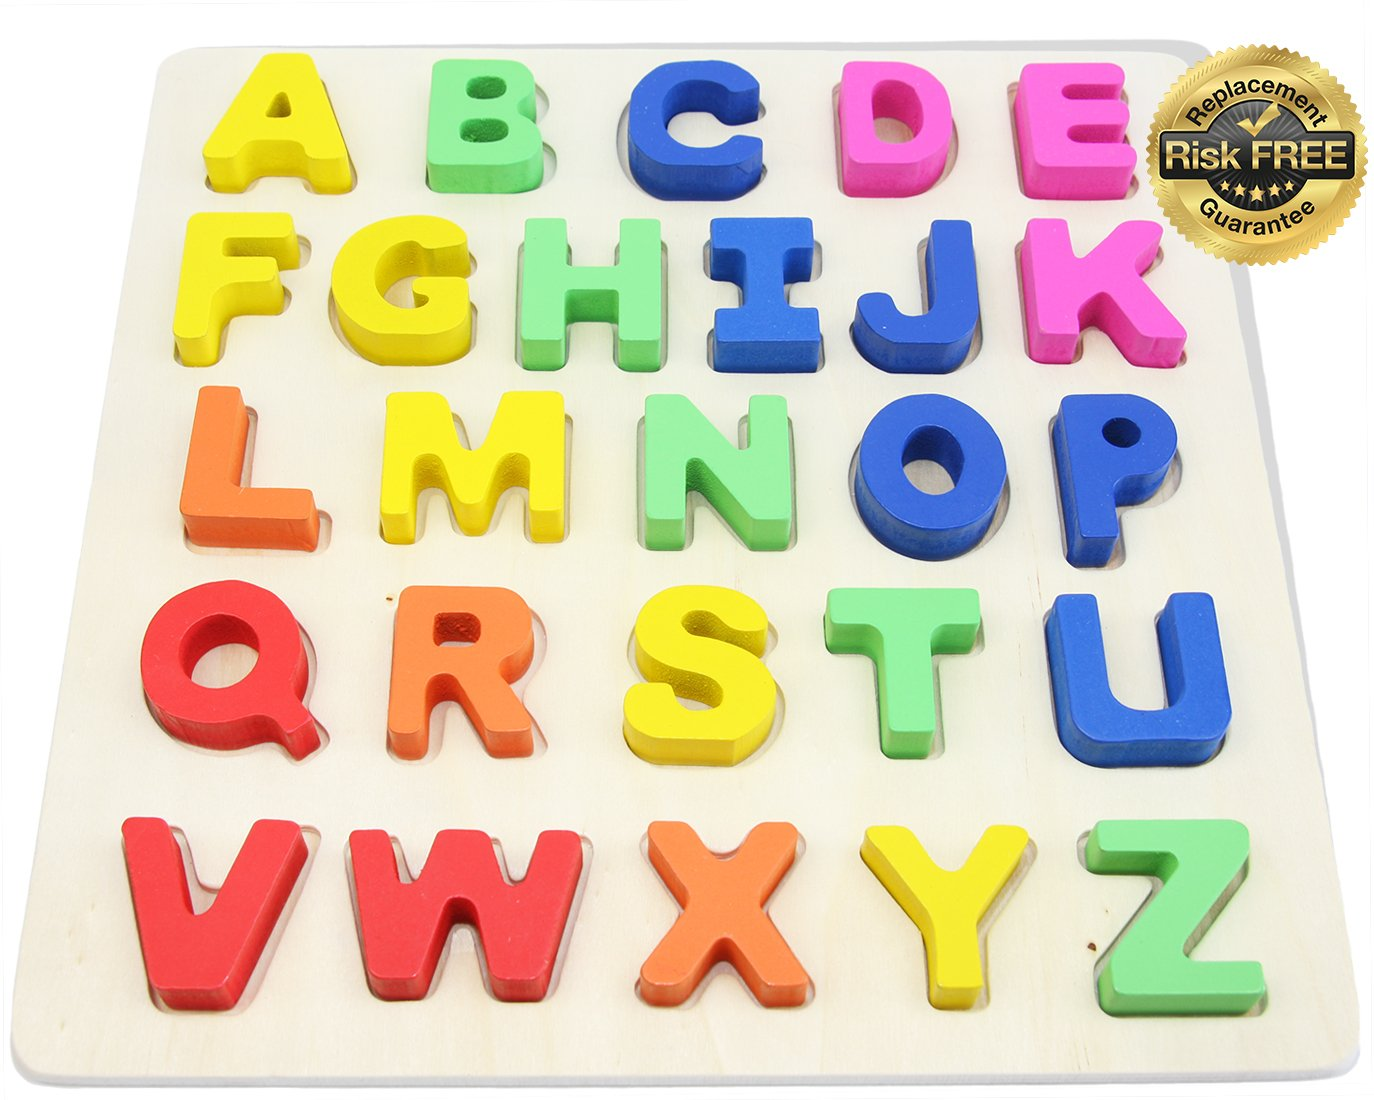 Wooden Alphabet Toddler Puzzles Toys For 2 To 3 Year Olds Kids With Big Bright Color Letters; ABC Girl, Boy Learning Resources; Educational Name, Shape Puzzle Preschool Learning Toys For Toddlers